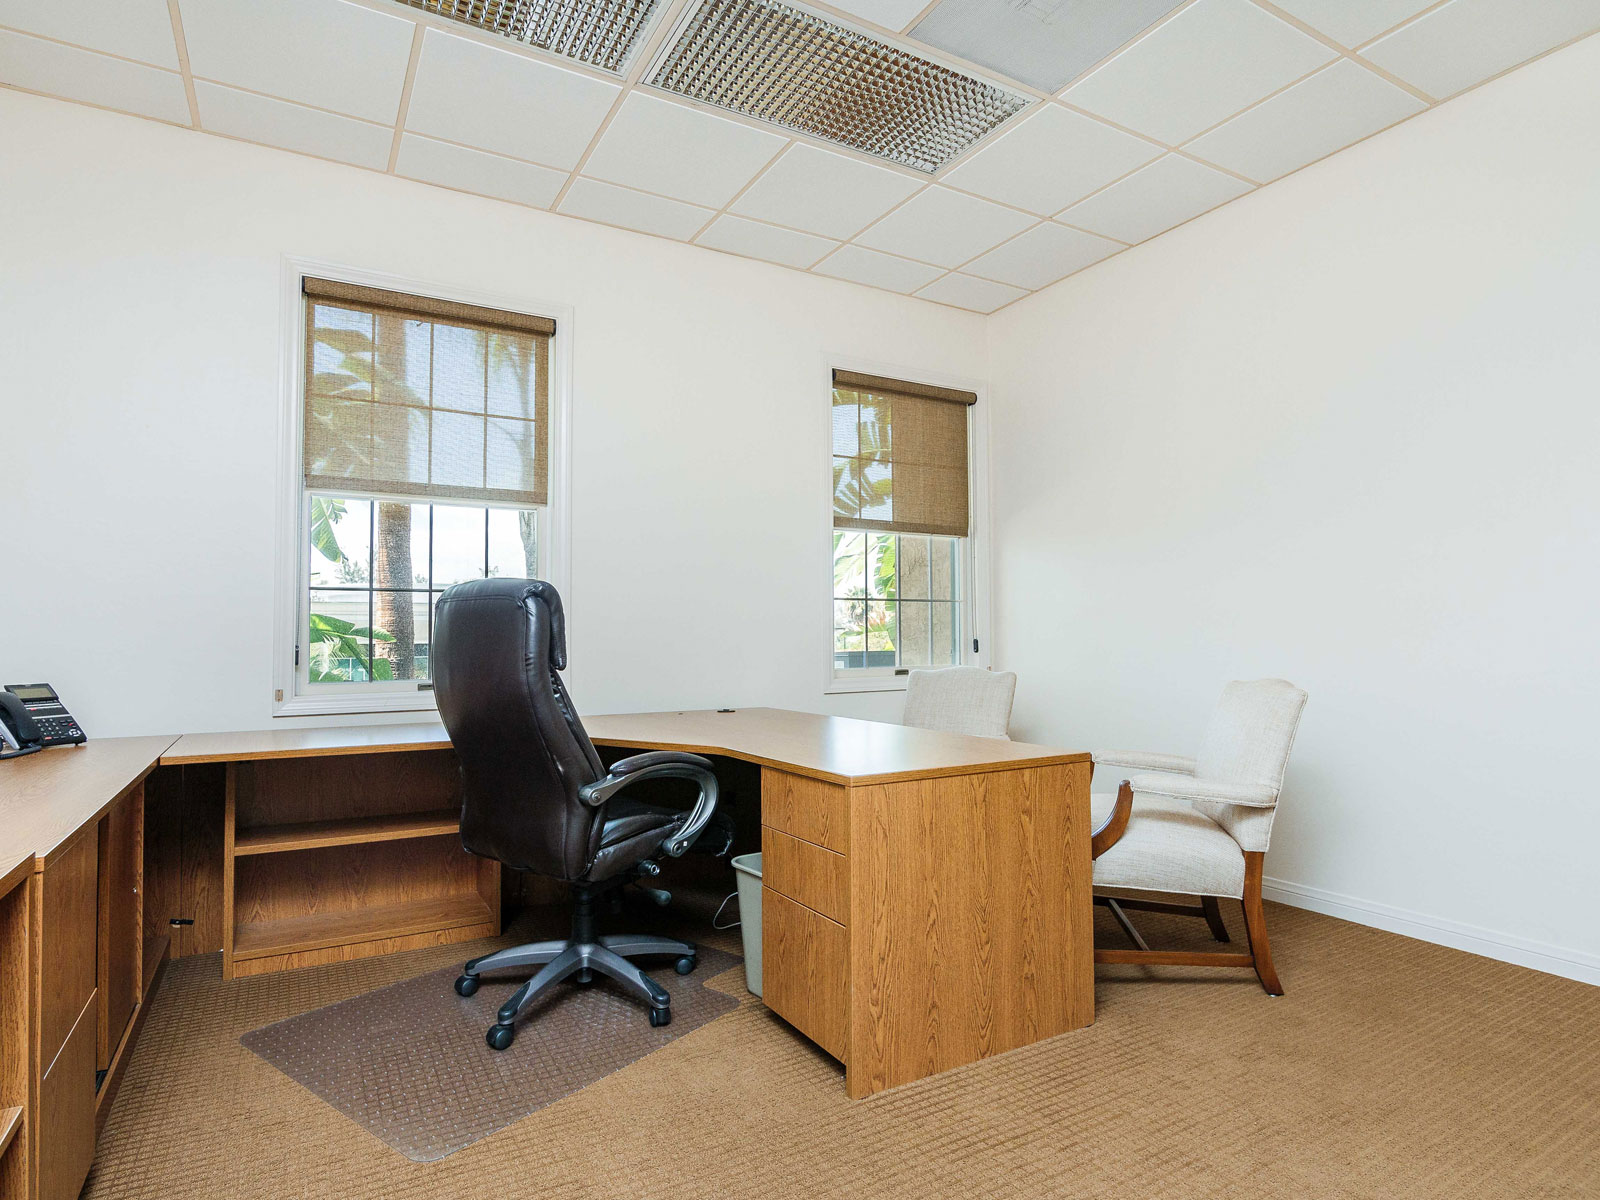 316-s-melrose-vista-ca-executive-office-for-lease-107-1